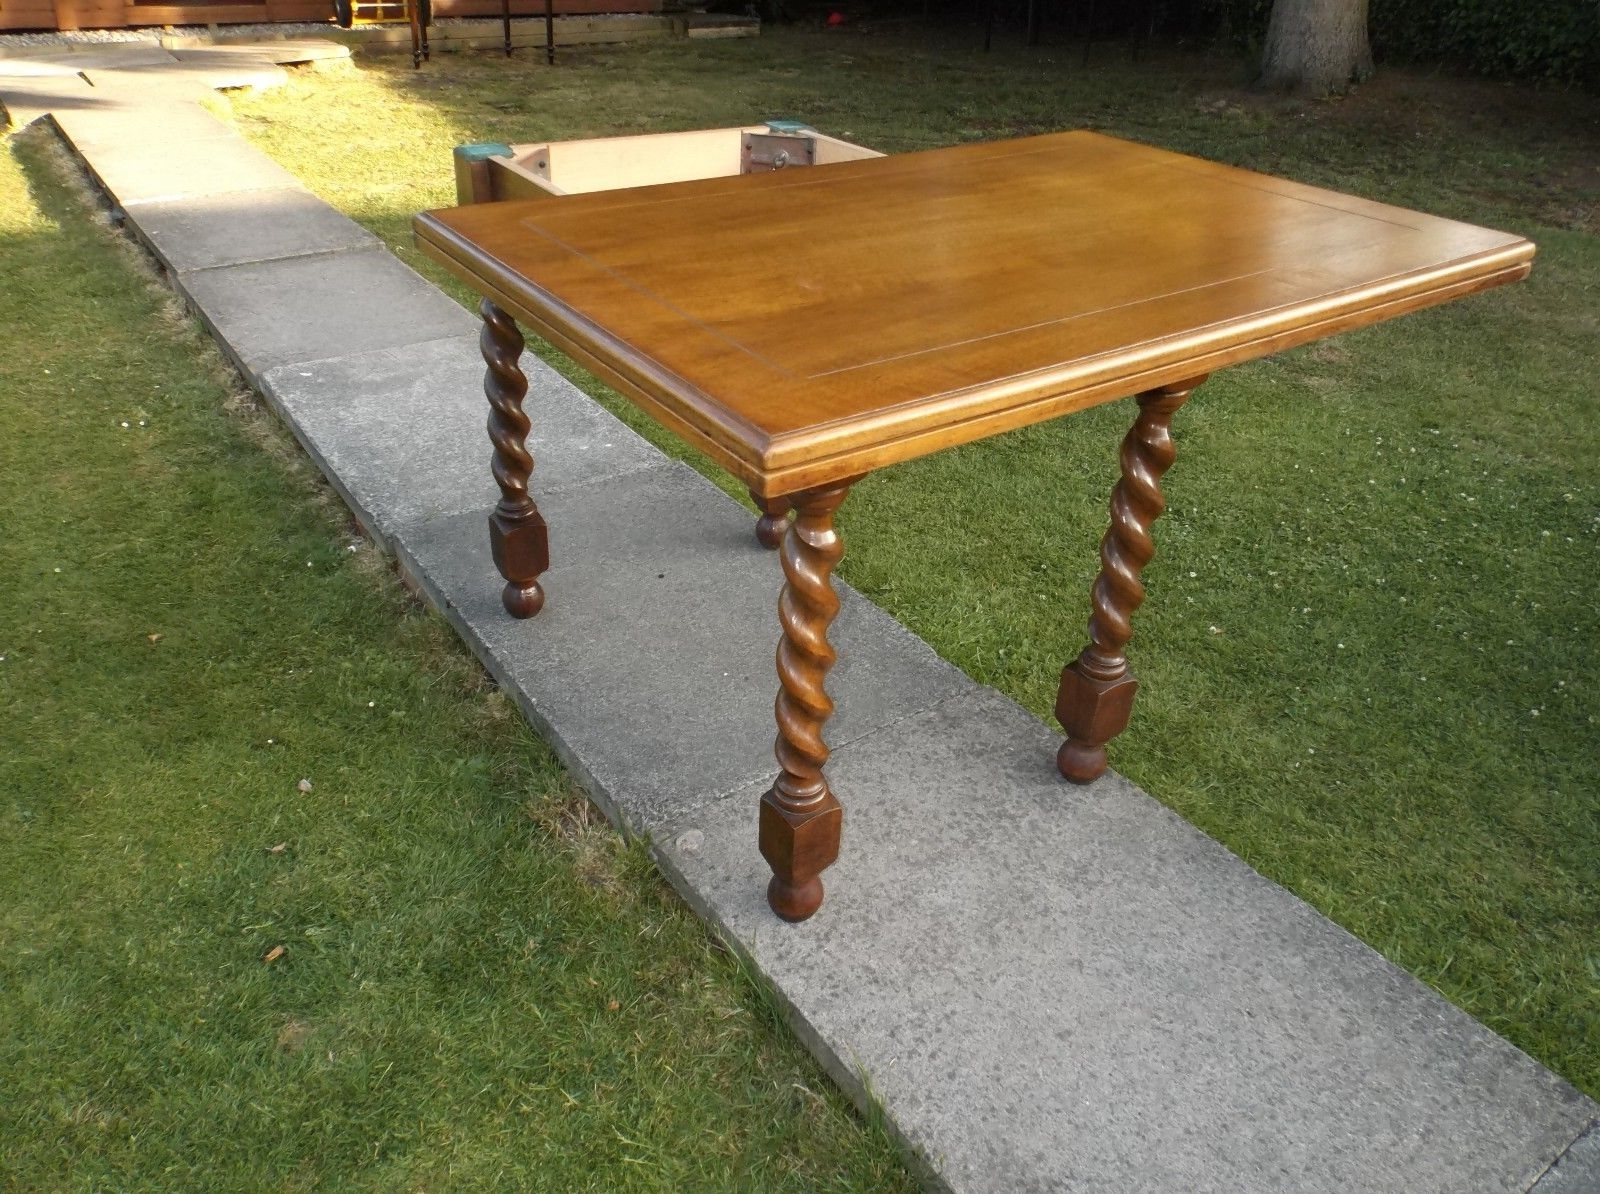 Flip Top Oak Dining Tables For Most Popular A Twist And Flip Top Oak Barley Twist Leg Games Or Dining Table – (View 18 of 25)